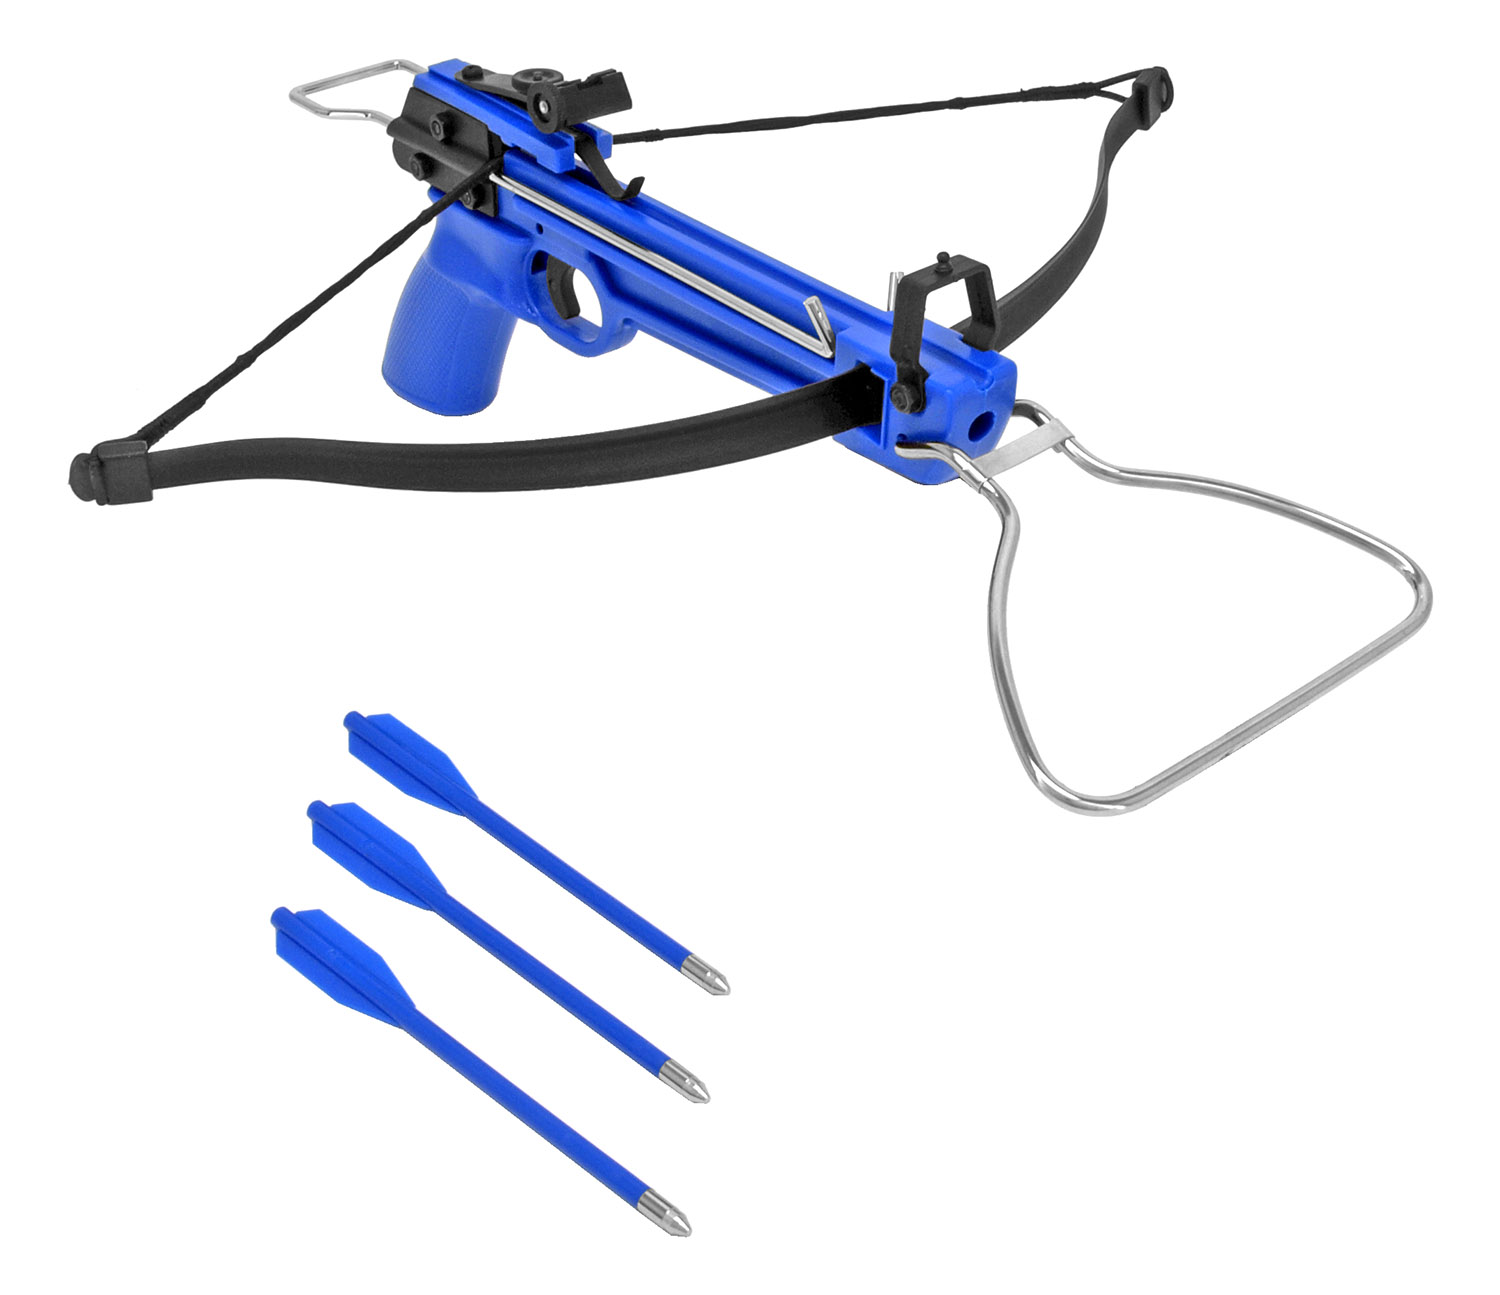 The Pathfinder Bolt Crossbow